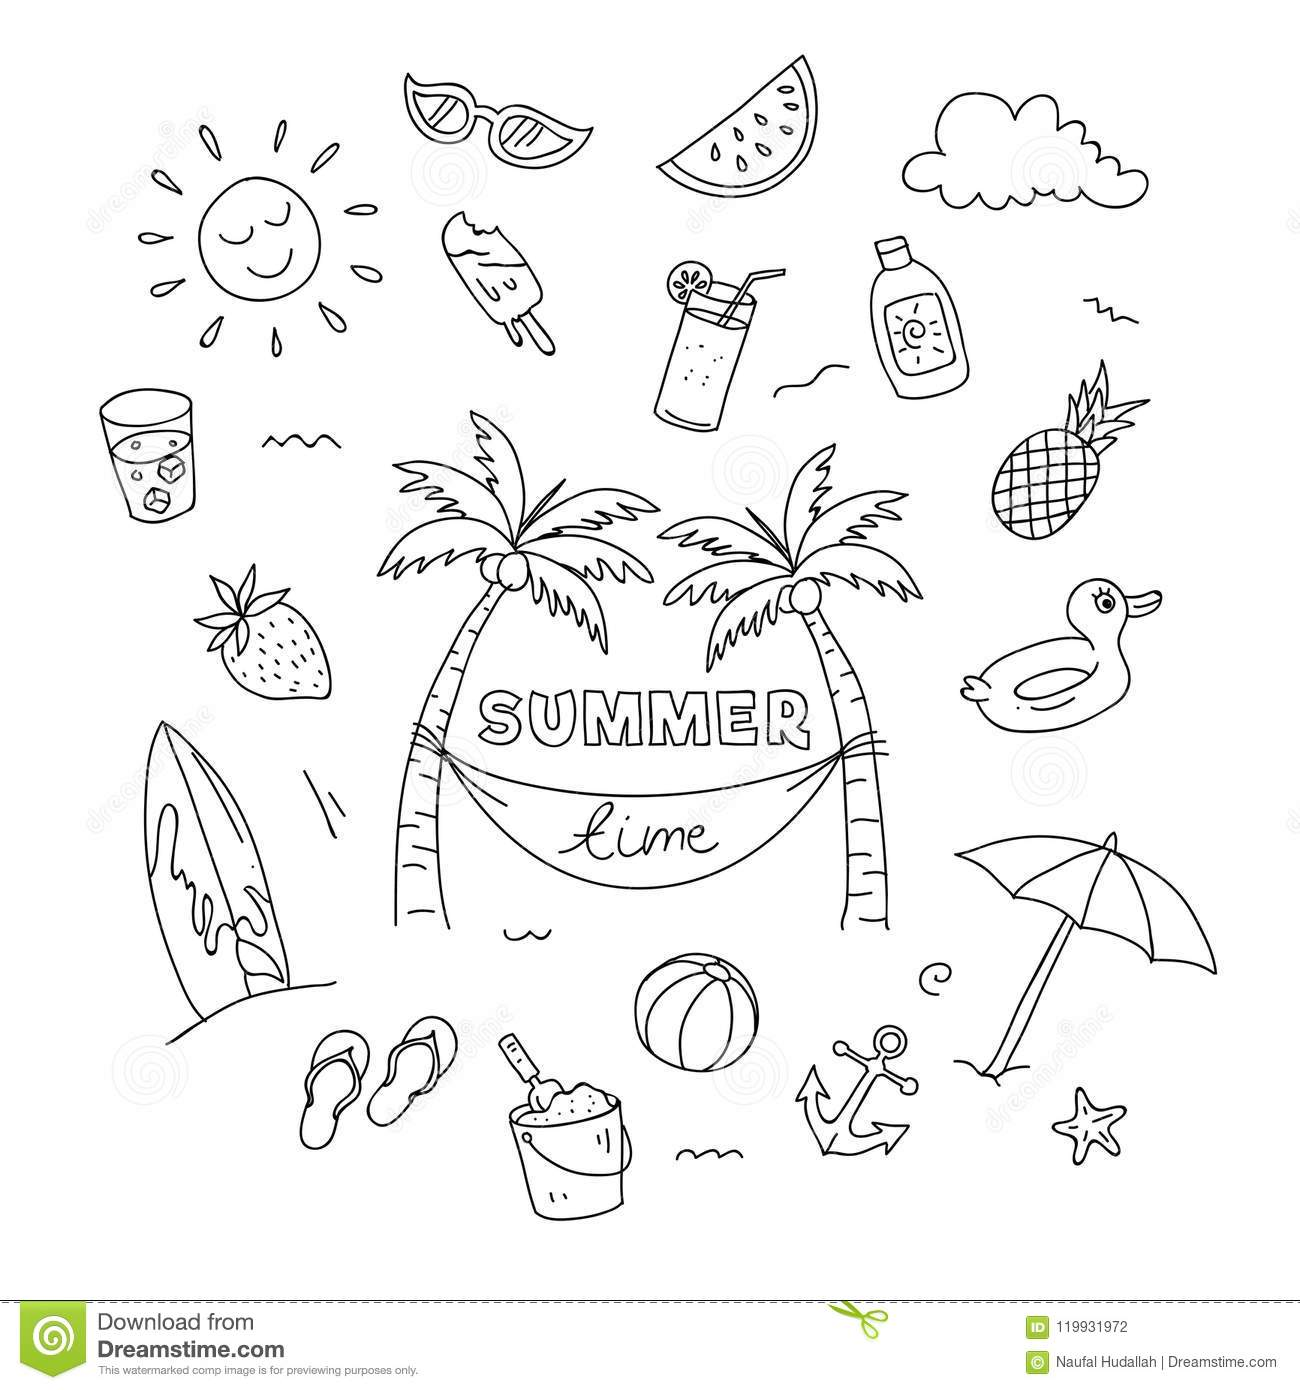 Summer Time Doodle Art With Beach Holiday Object